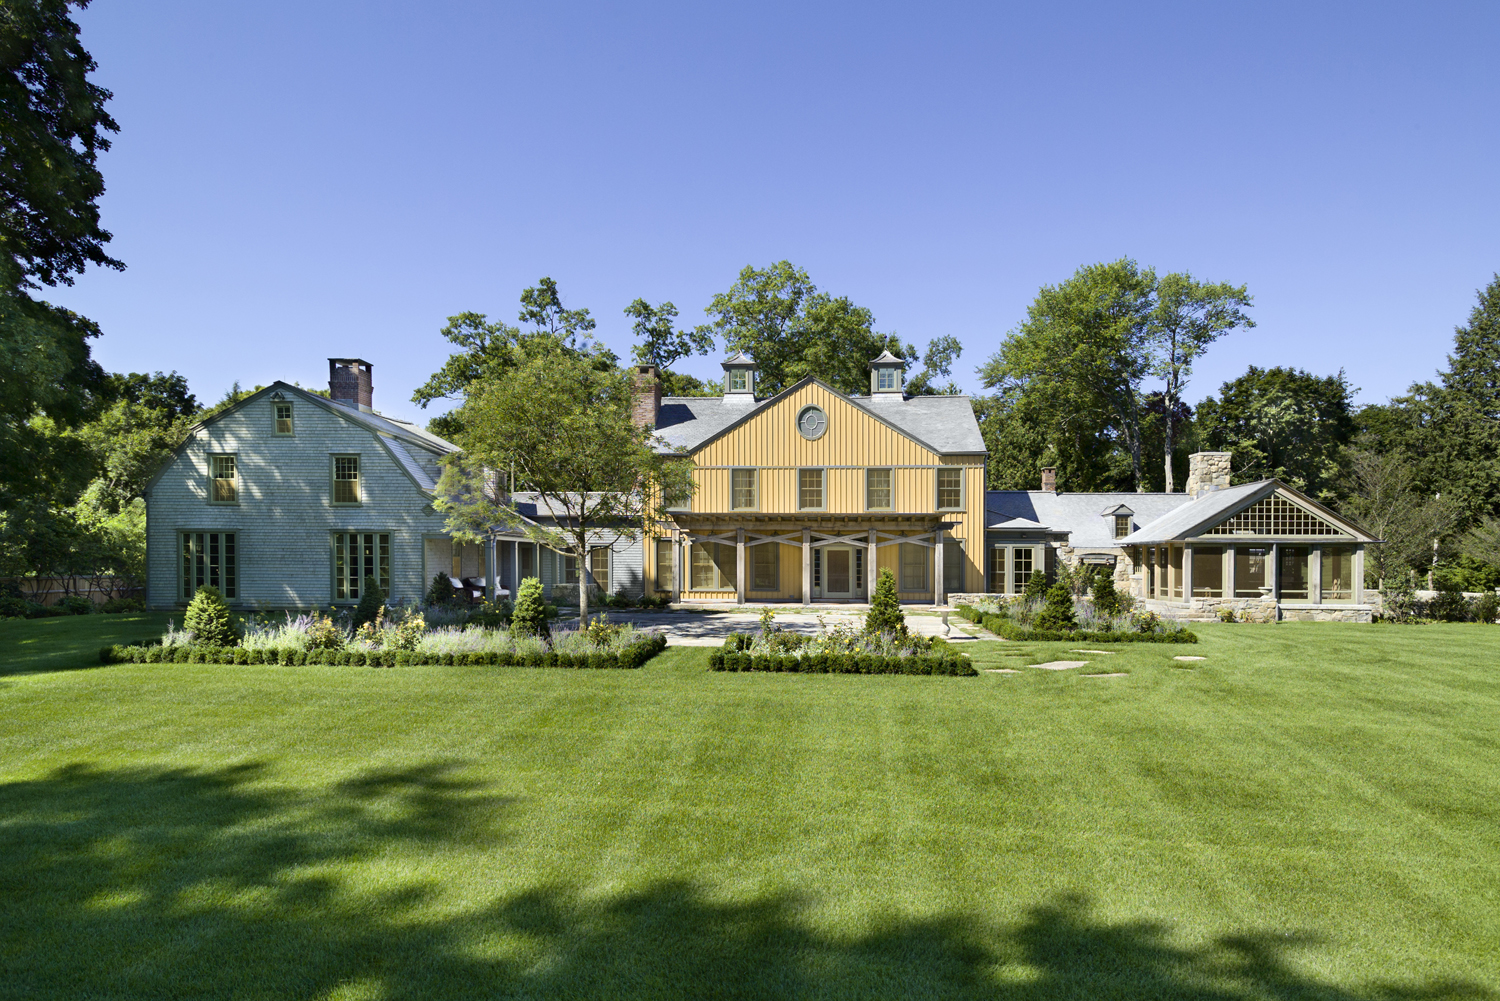 Bucolic Country Compound, Connecticut